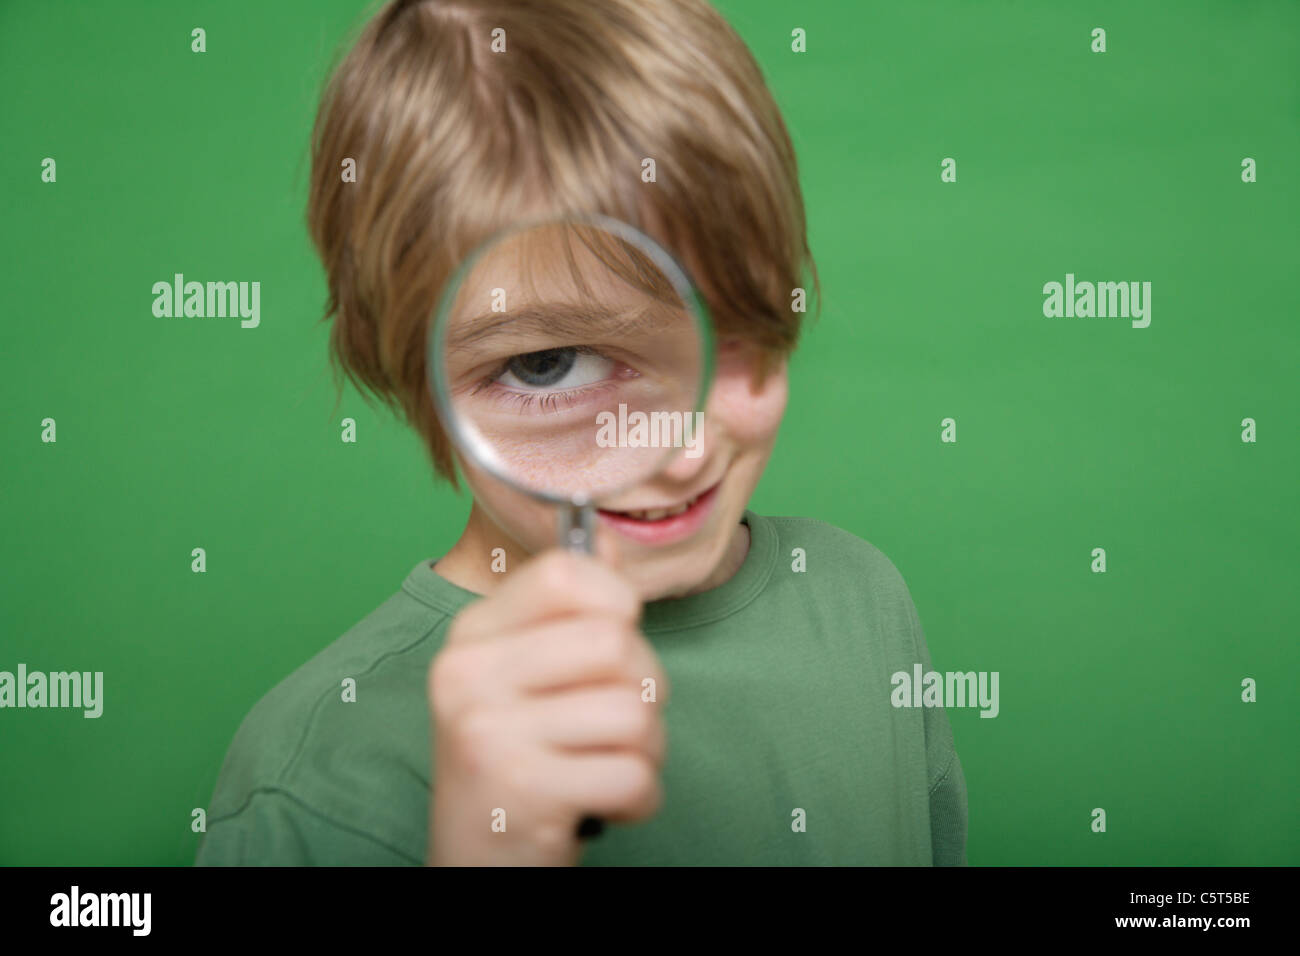 Close up of boy looking through magnifying glass against green background - Stock Image